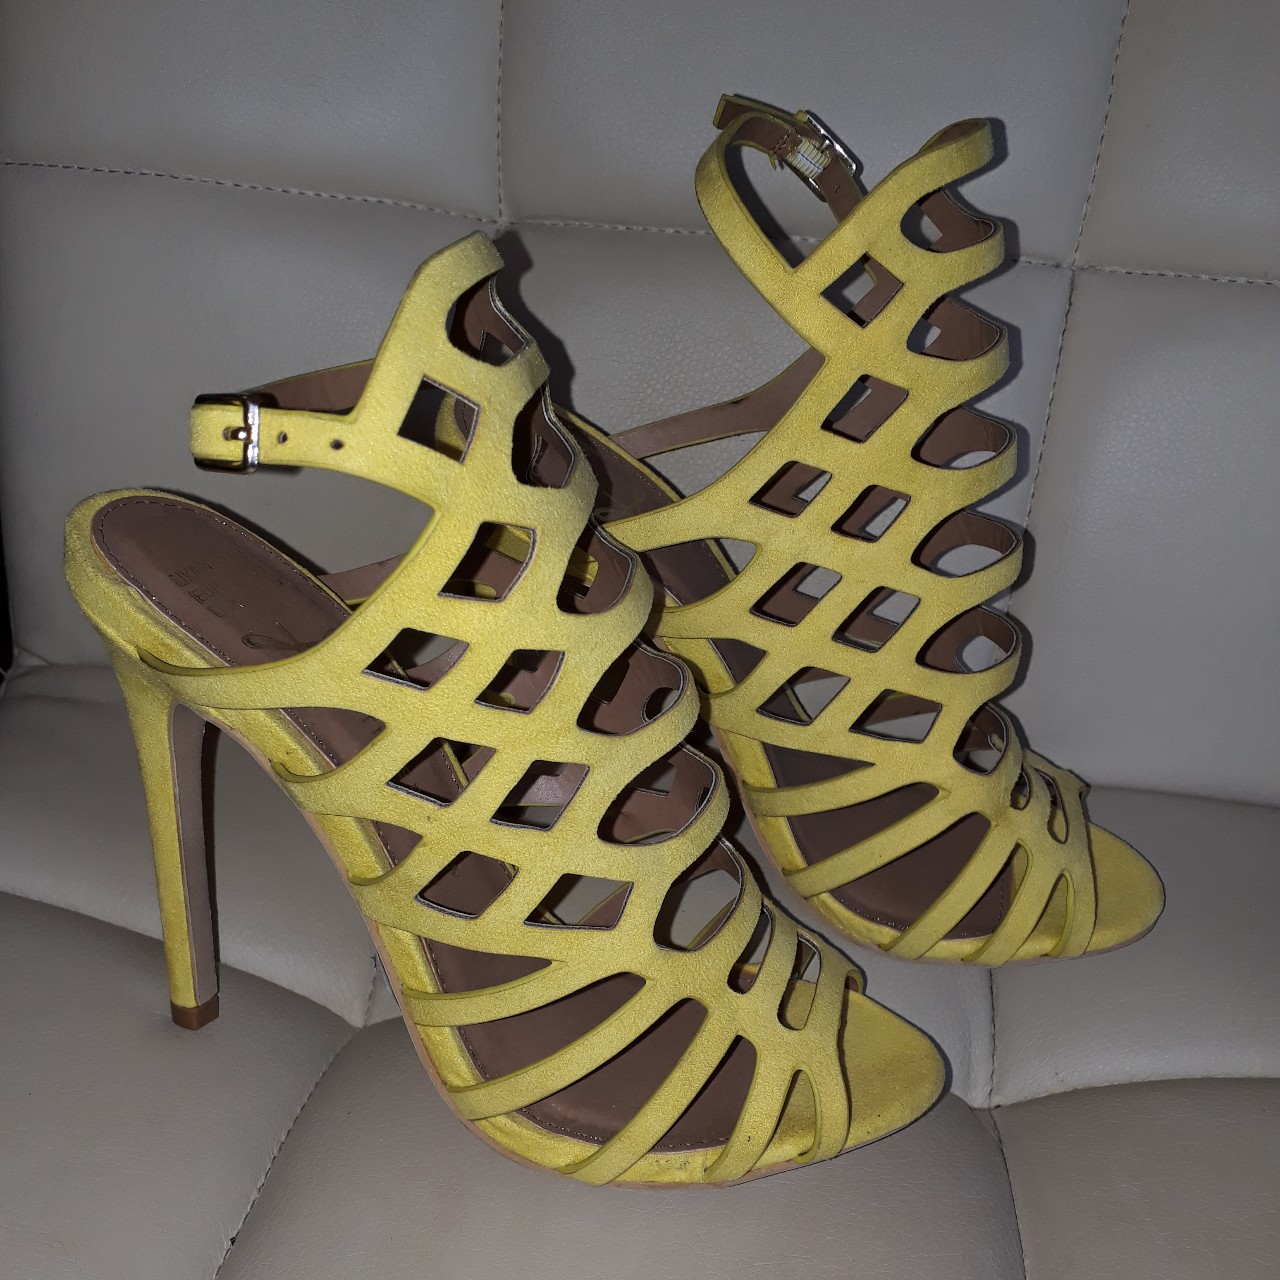 Primark/Penneys yellow strappy sandals